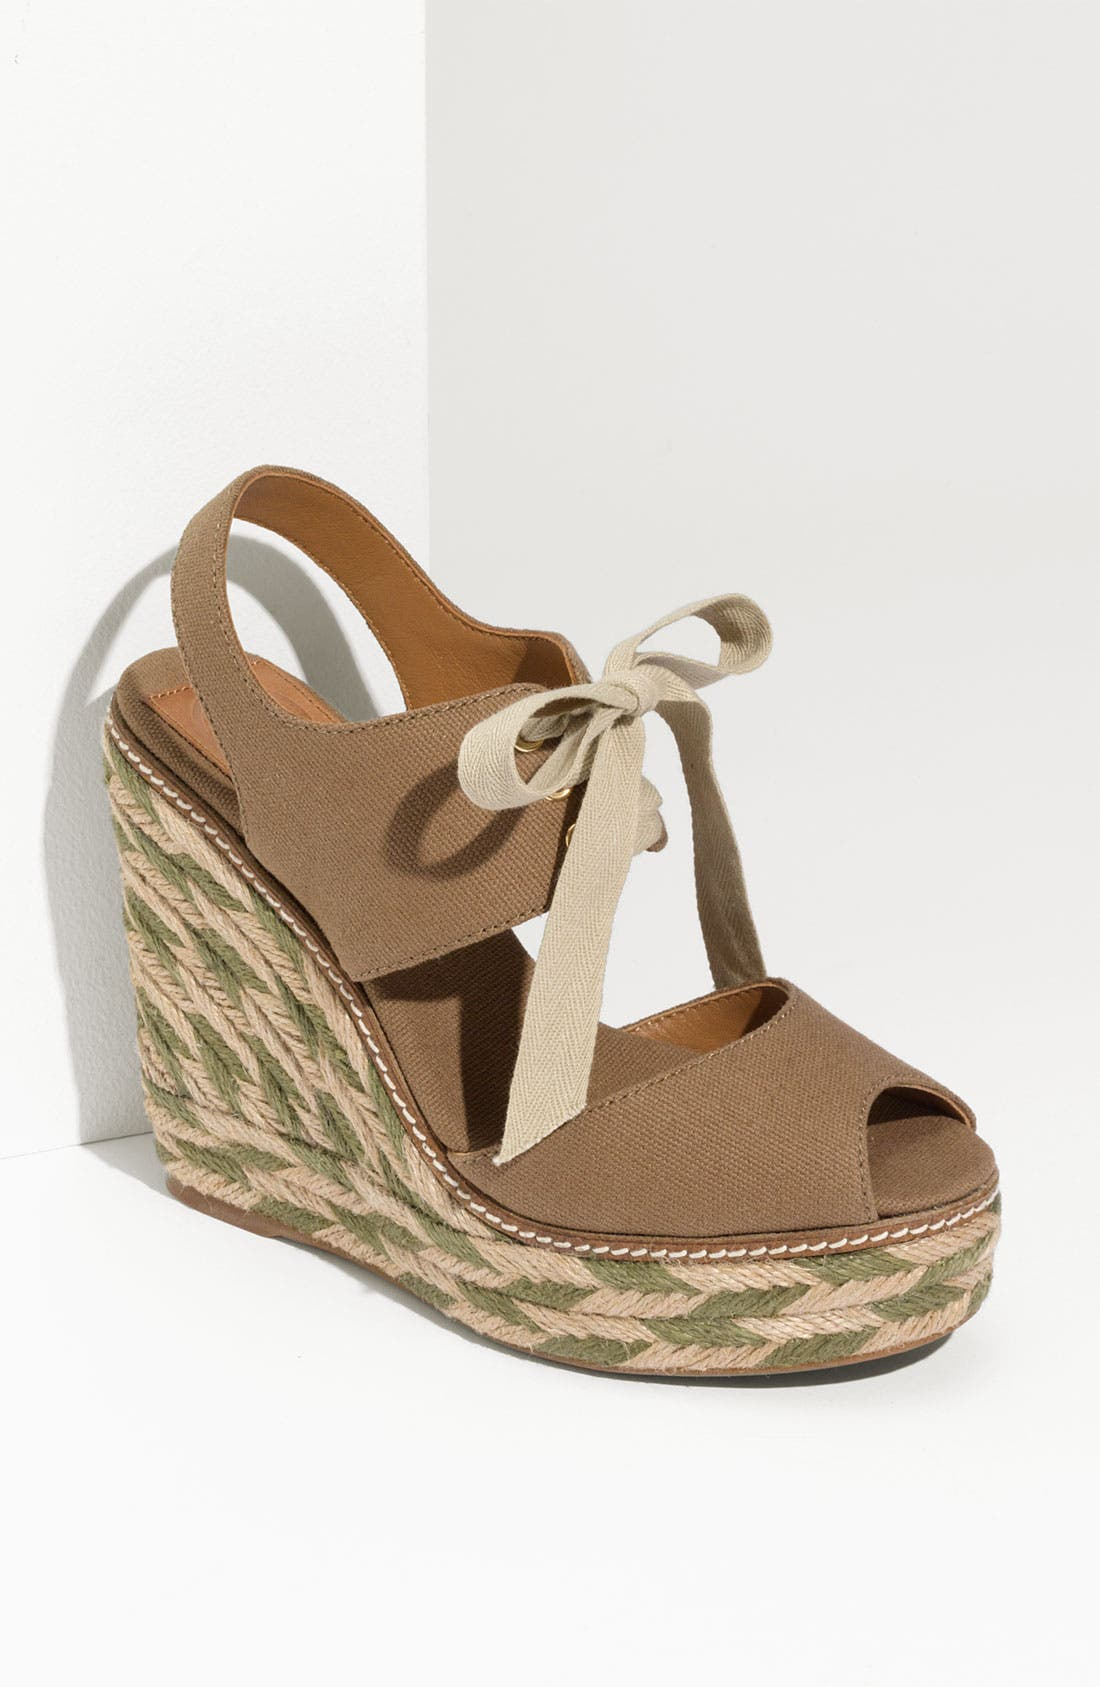 Alternate Image 1 Selected - Tory Burch 'Linley' High Wedge Espadrille